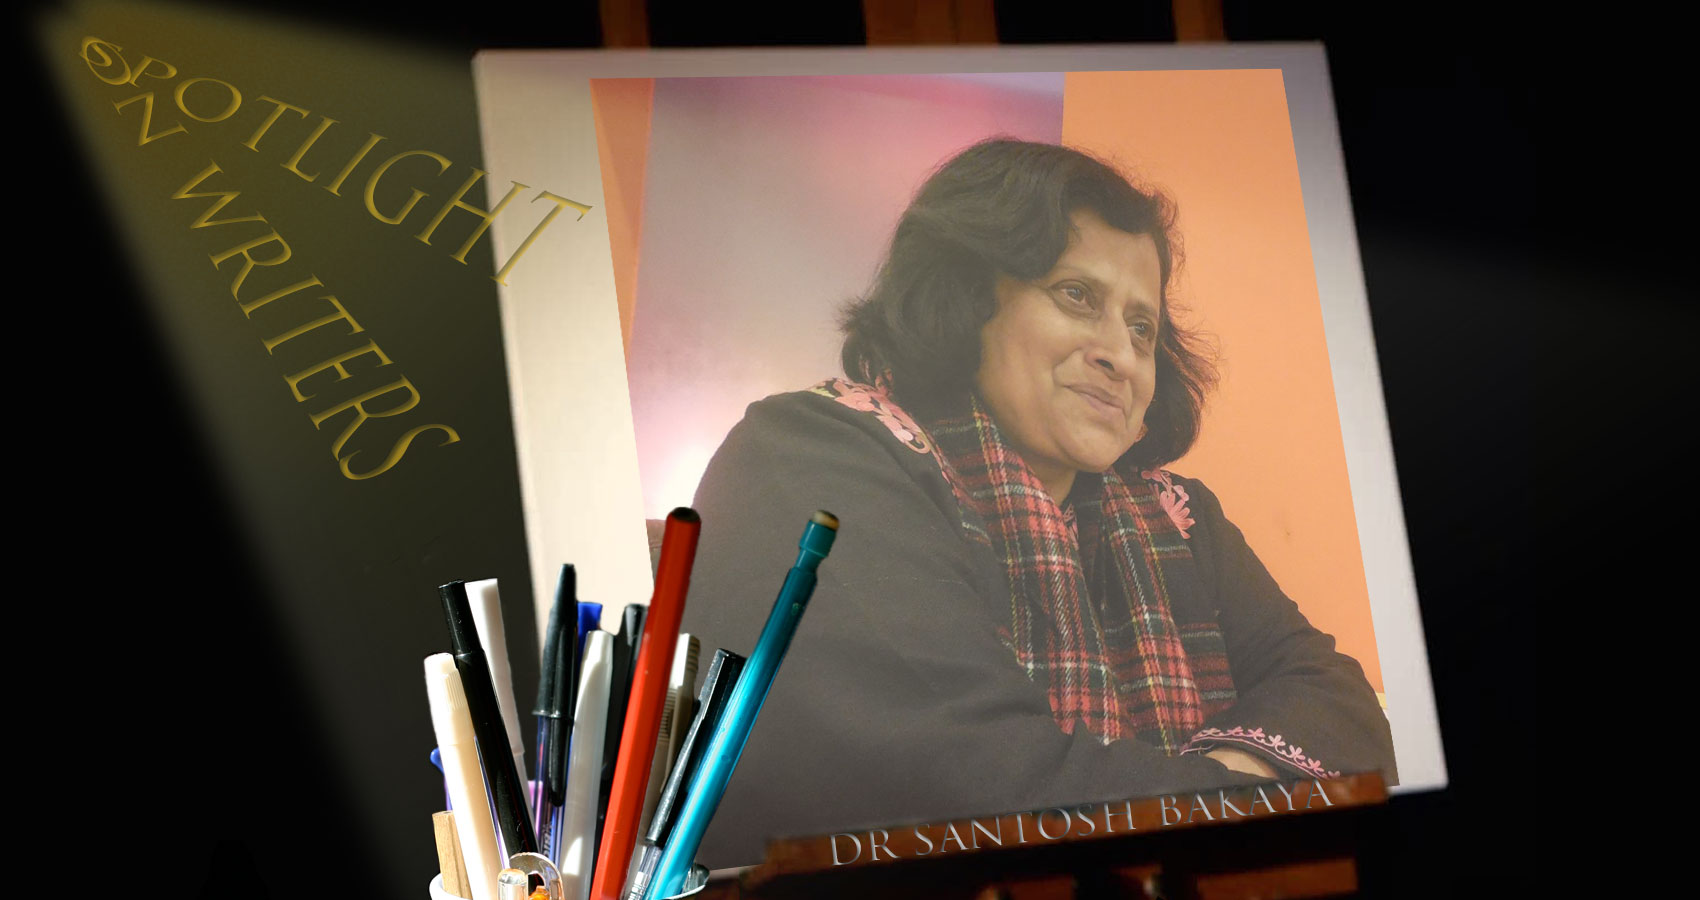 Spotlight On Writers - Dr Santosh Bakaya at Spillwords.com